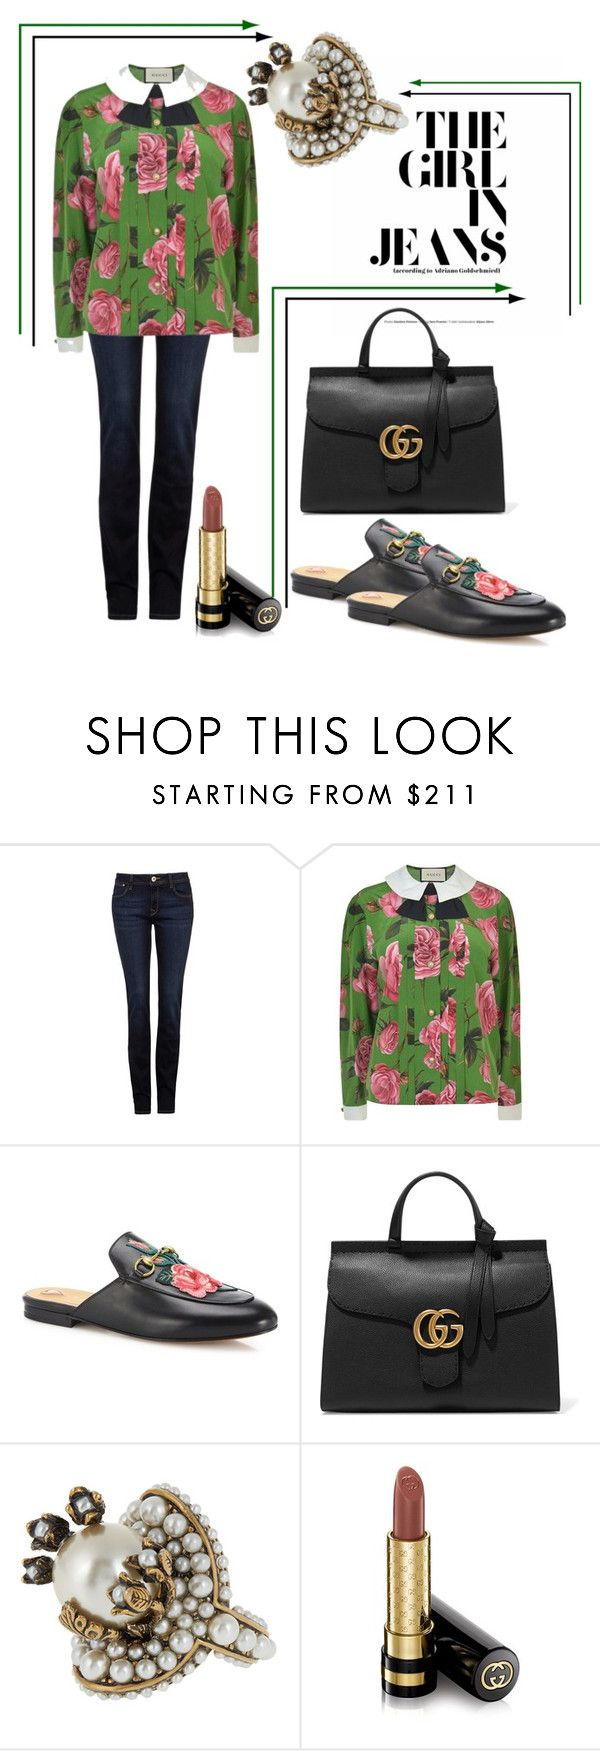 """""""Forget. I'm not sure I could..."""" by amygirl49 ❤ liked on Polyvore featuring DL1961 Premium Denim and Gucci"""